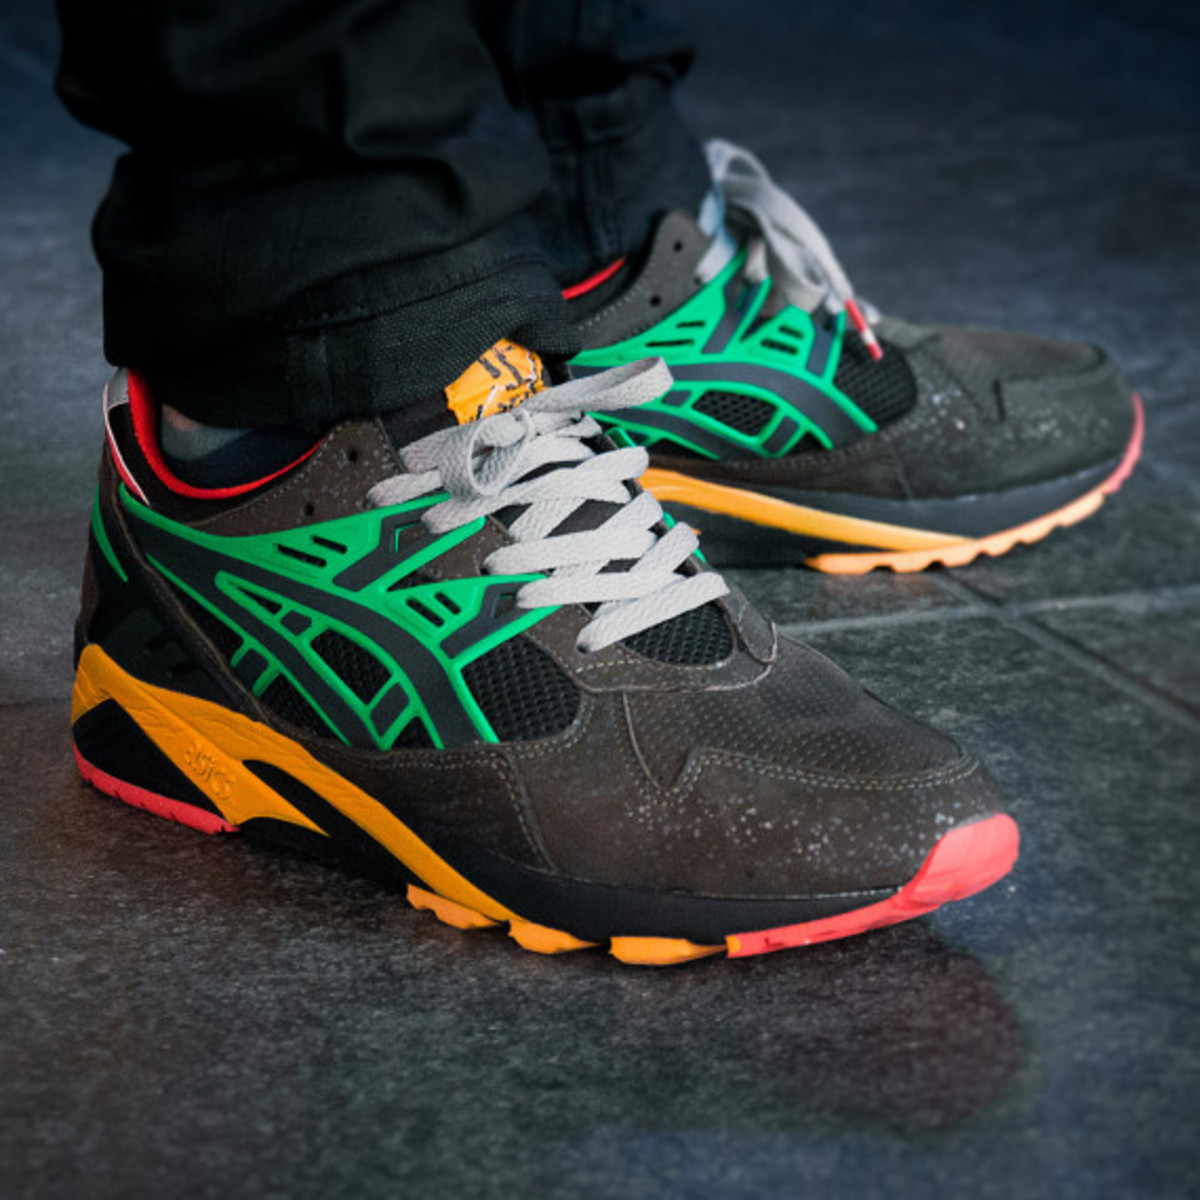 packer-shoes-x-asics-gel-kayano-trainer-teaneck-10th-anniversary-02